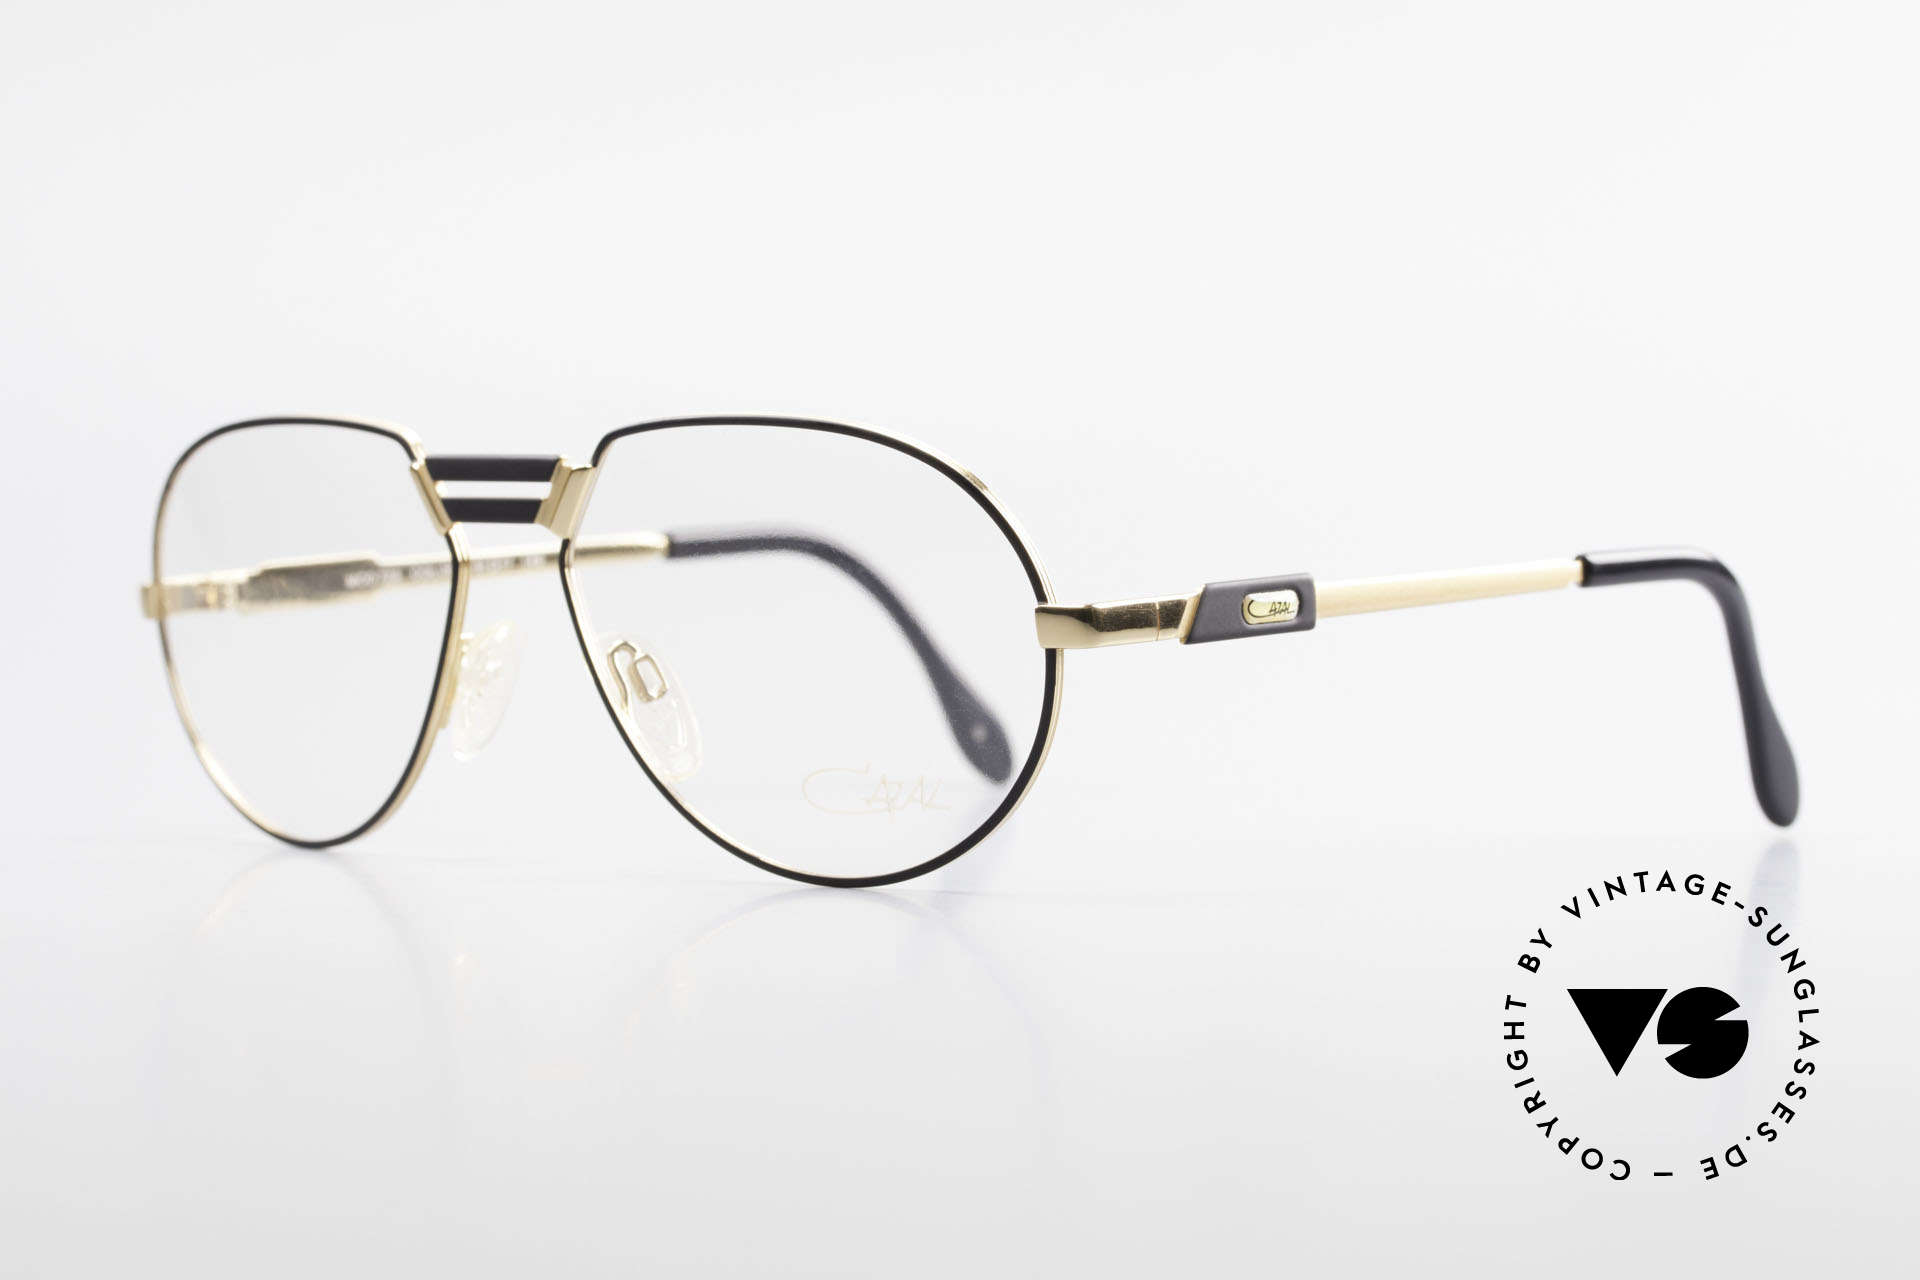 Cazal 739 Extraordinary Eyeglasses, very elegant and top-quality; made in Germany, Made for Men